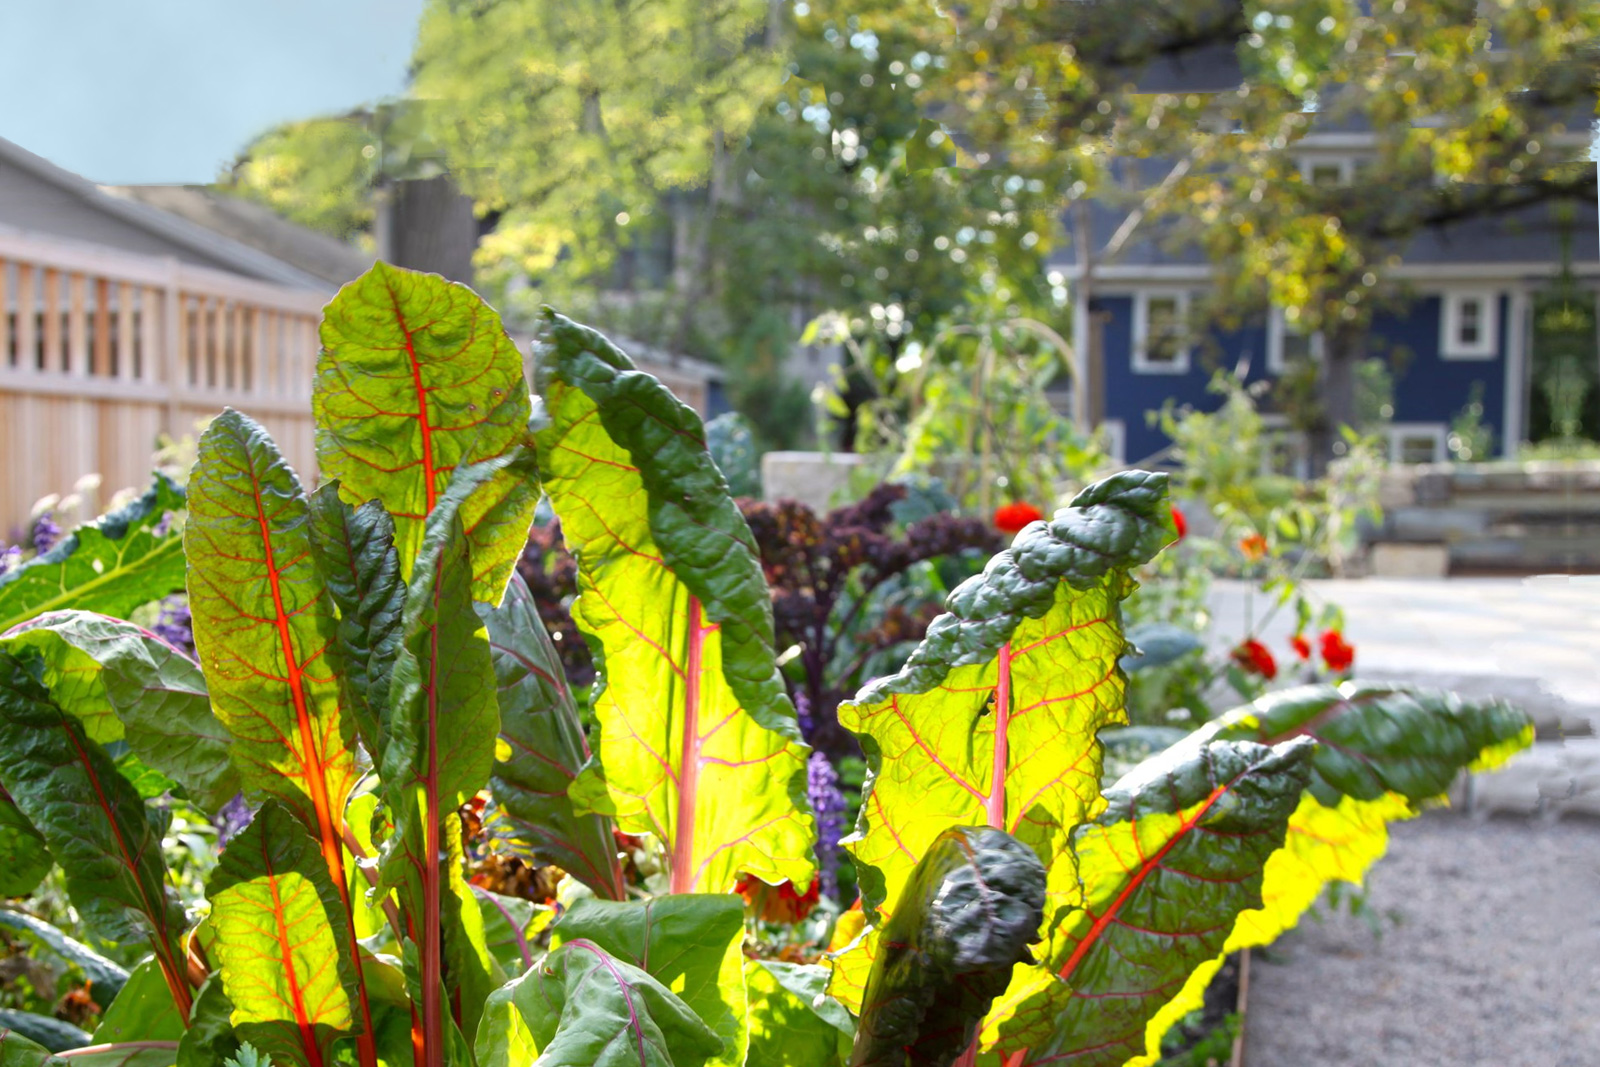 Swiss chard in a home garden